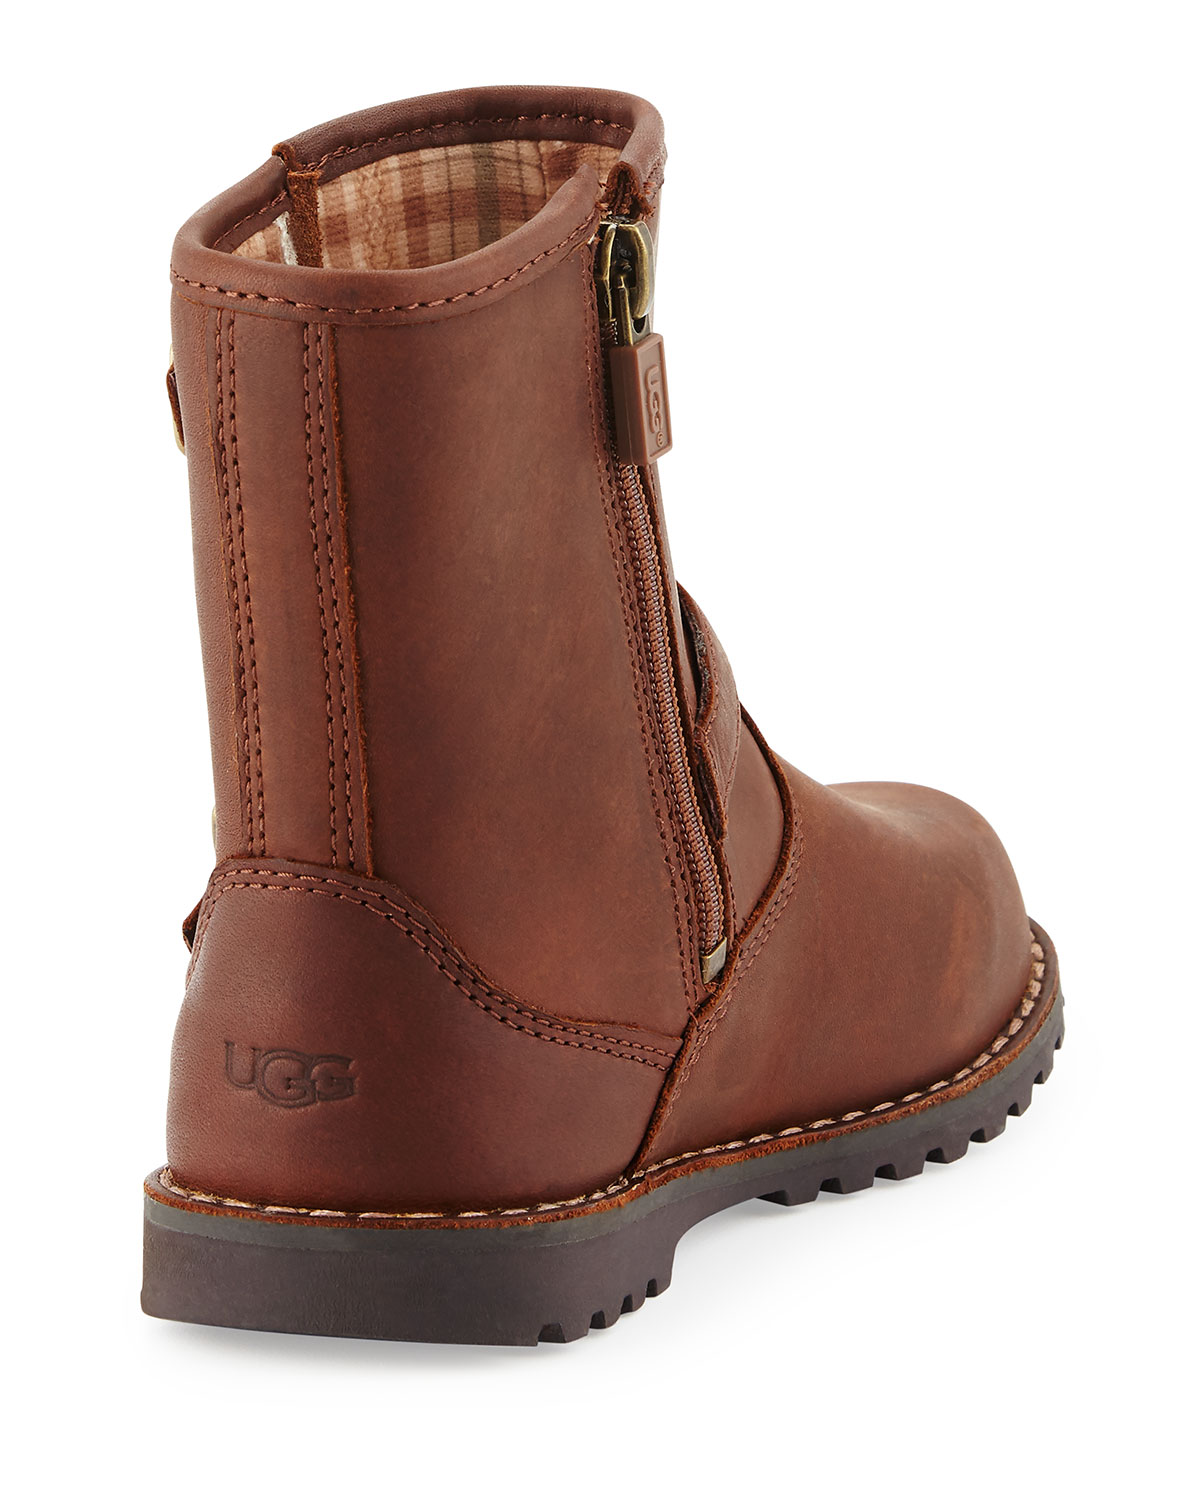 7544b4badec Harwell Leather Buckle-Trim Boot, Stout, Toddler Sizes 6-12